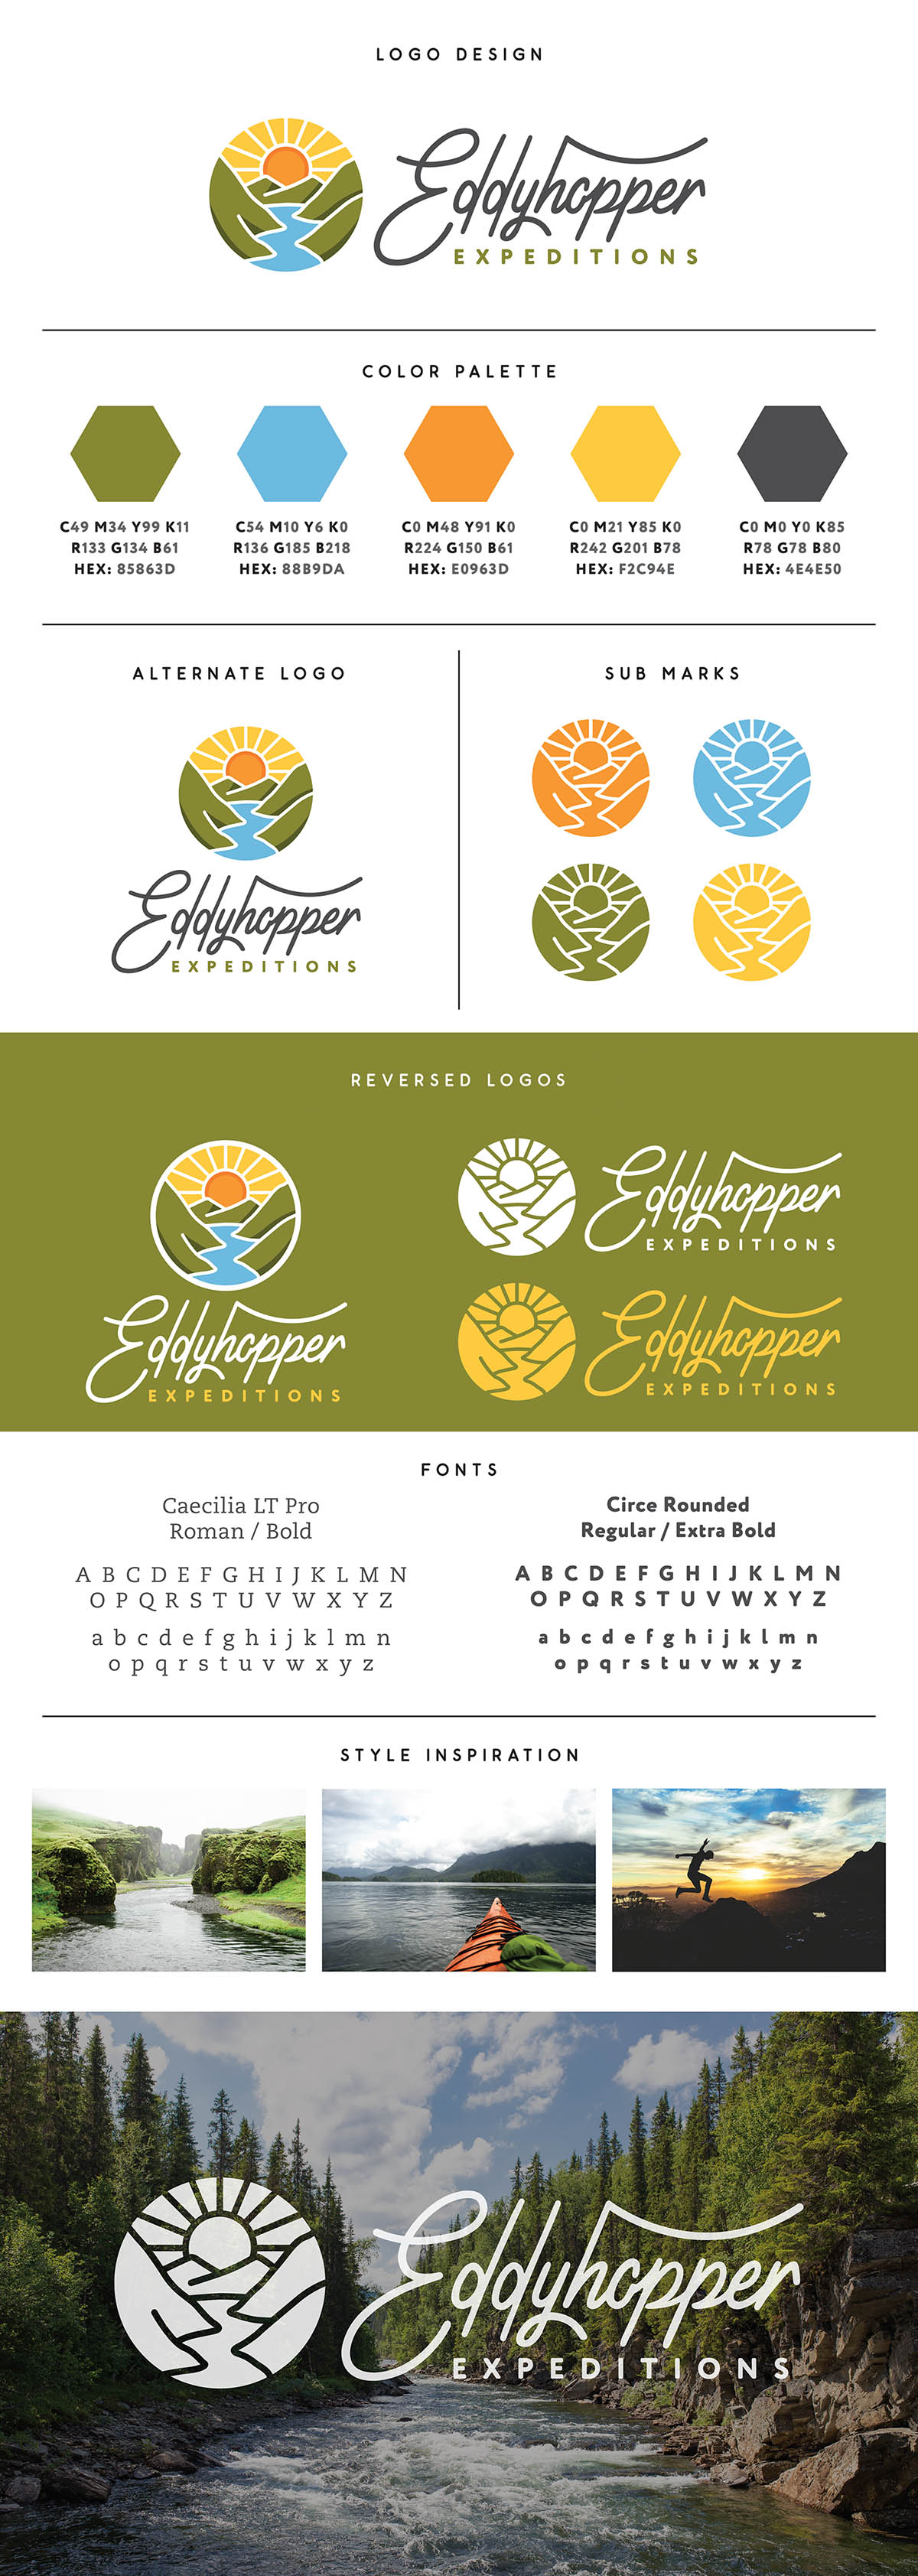 Eddyhopper Expeditions Branding